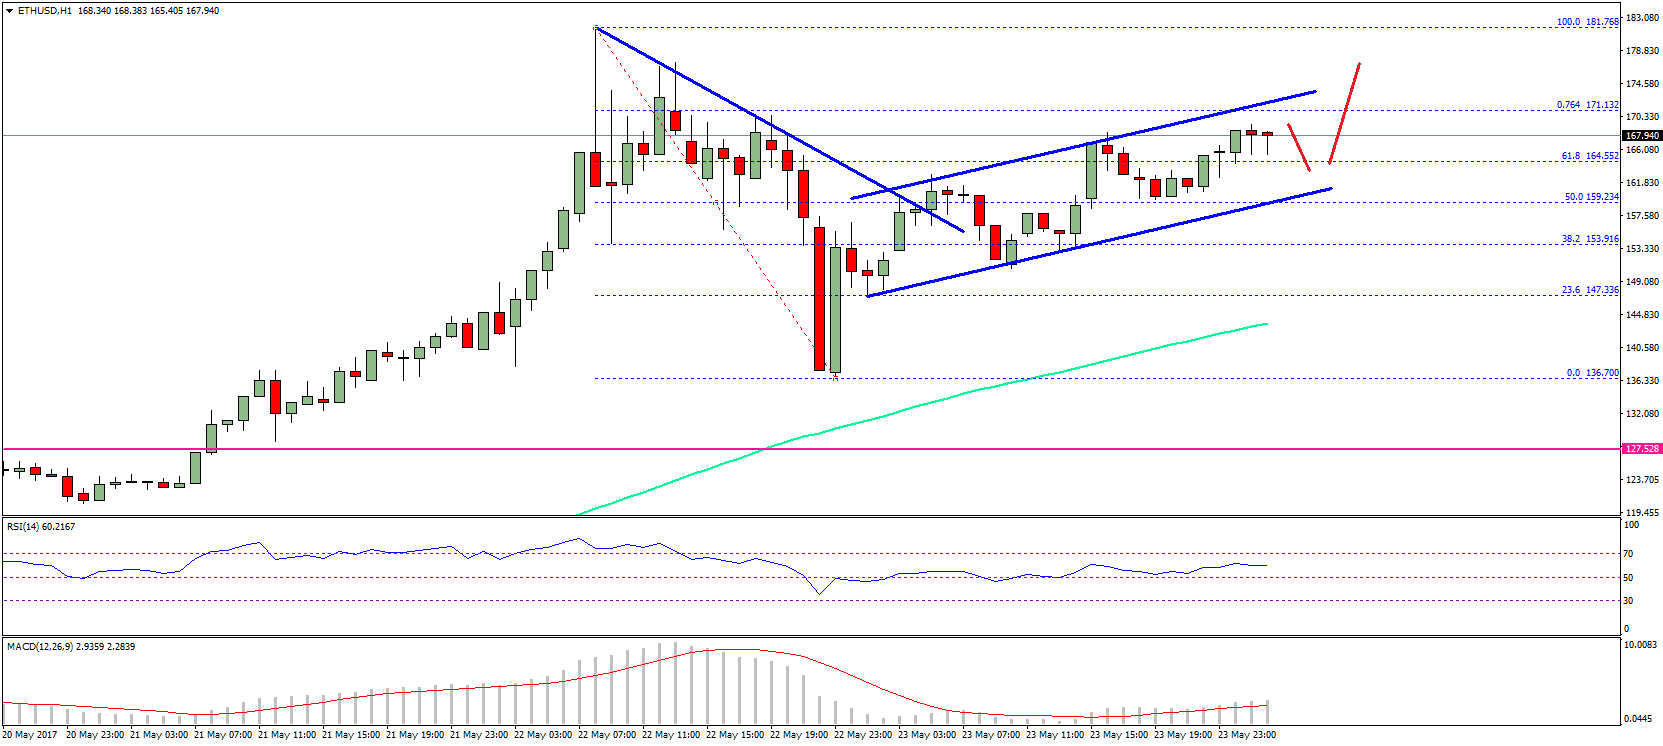 Channel Pattern With Support At 162 On The Hourly Chart As Long Price Is Inside It May Climb Towards 170 Or Might Even Break